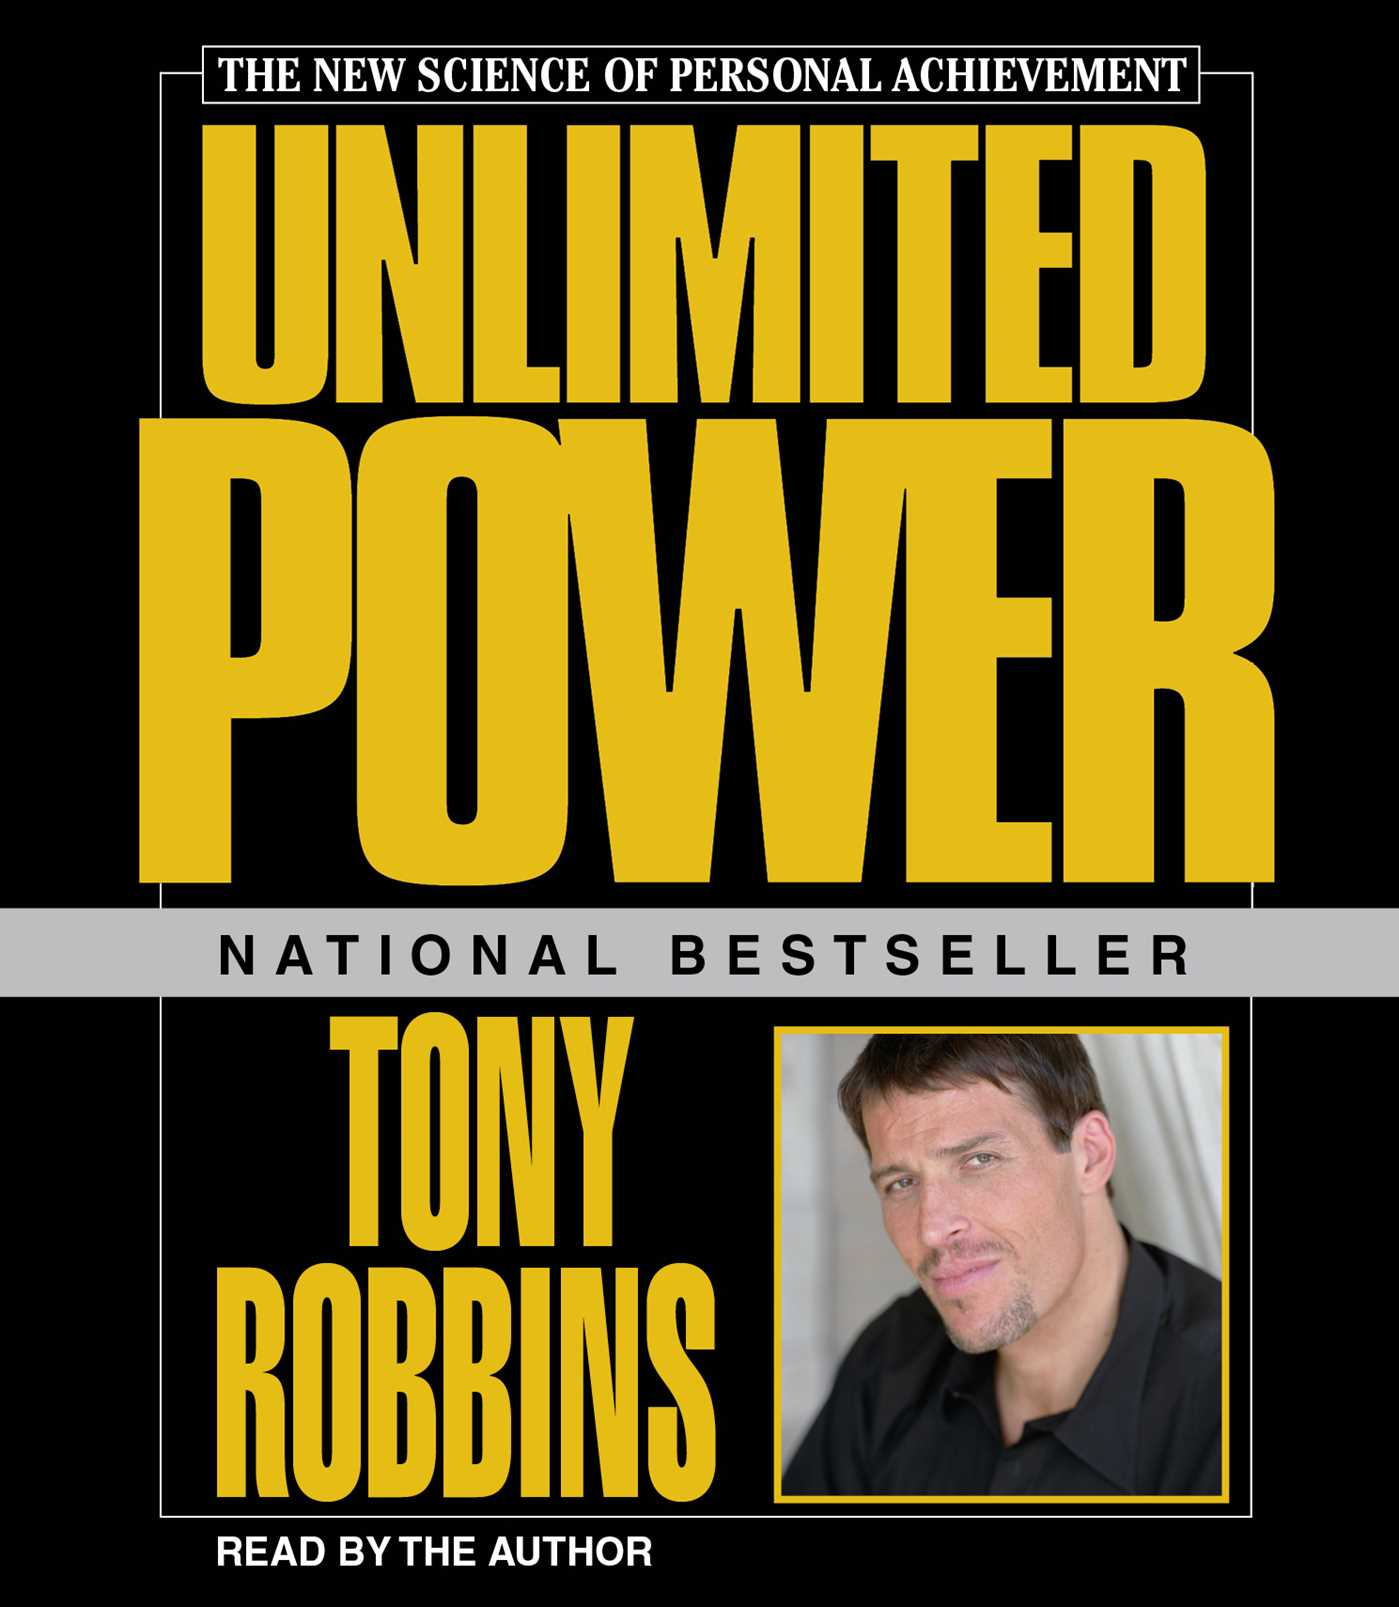 Unlimited Power Audiobook on CD by Tony Robbins | Official